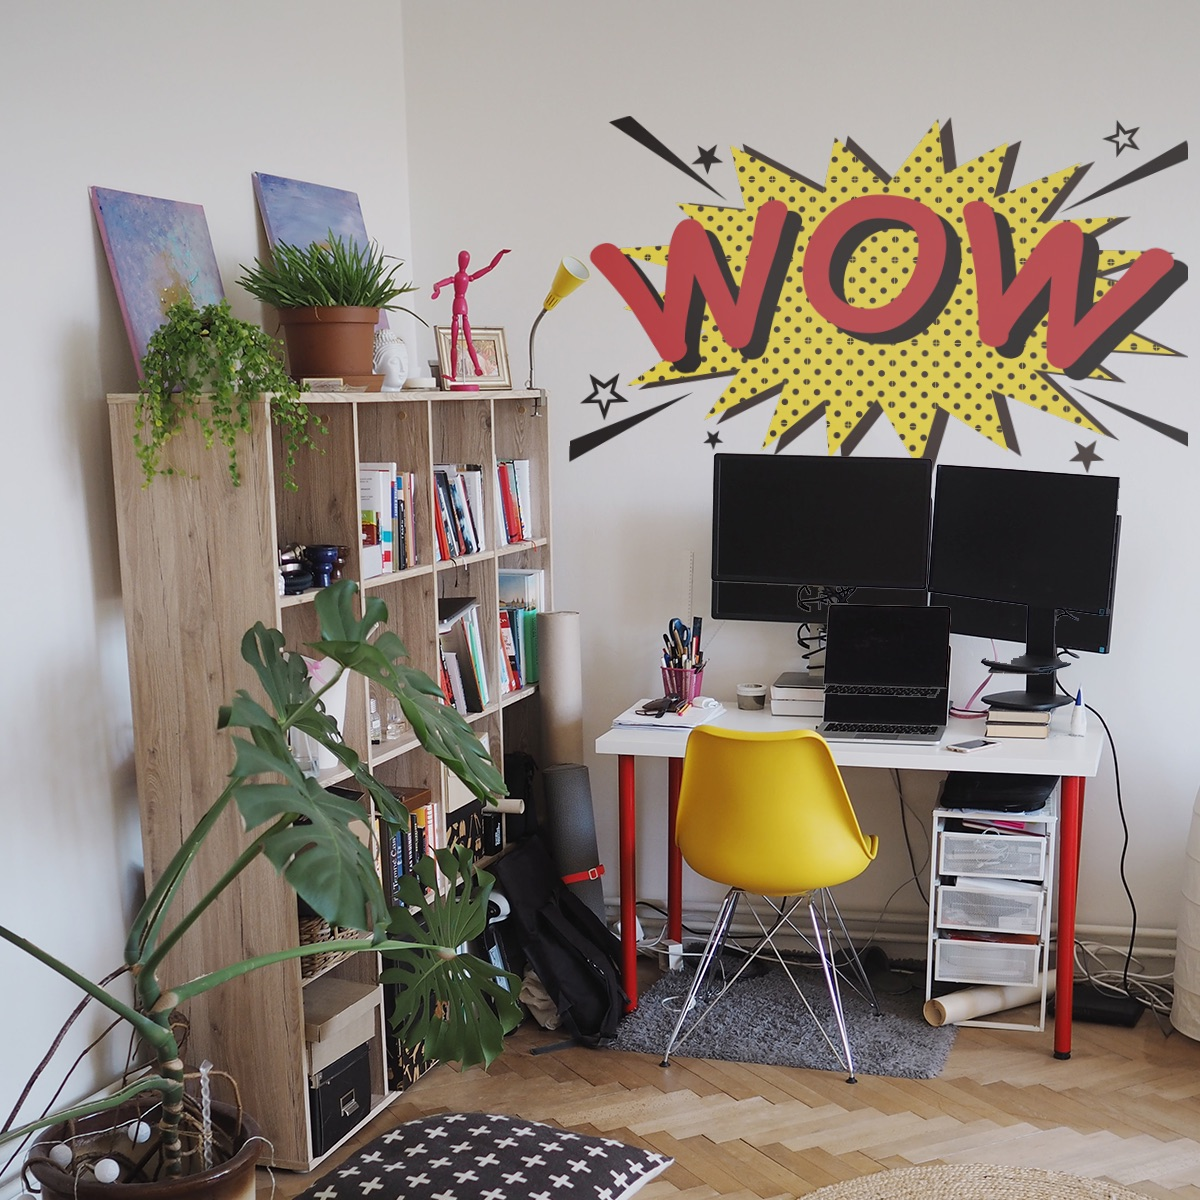 Decorative lettering wall sticker by CaptainText: Wow